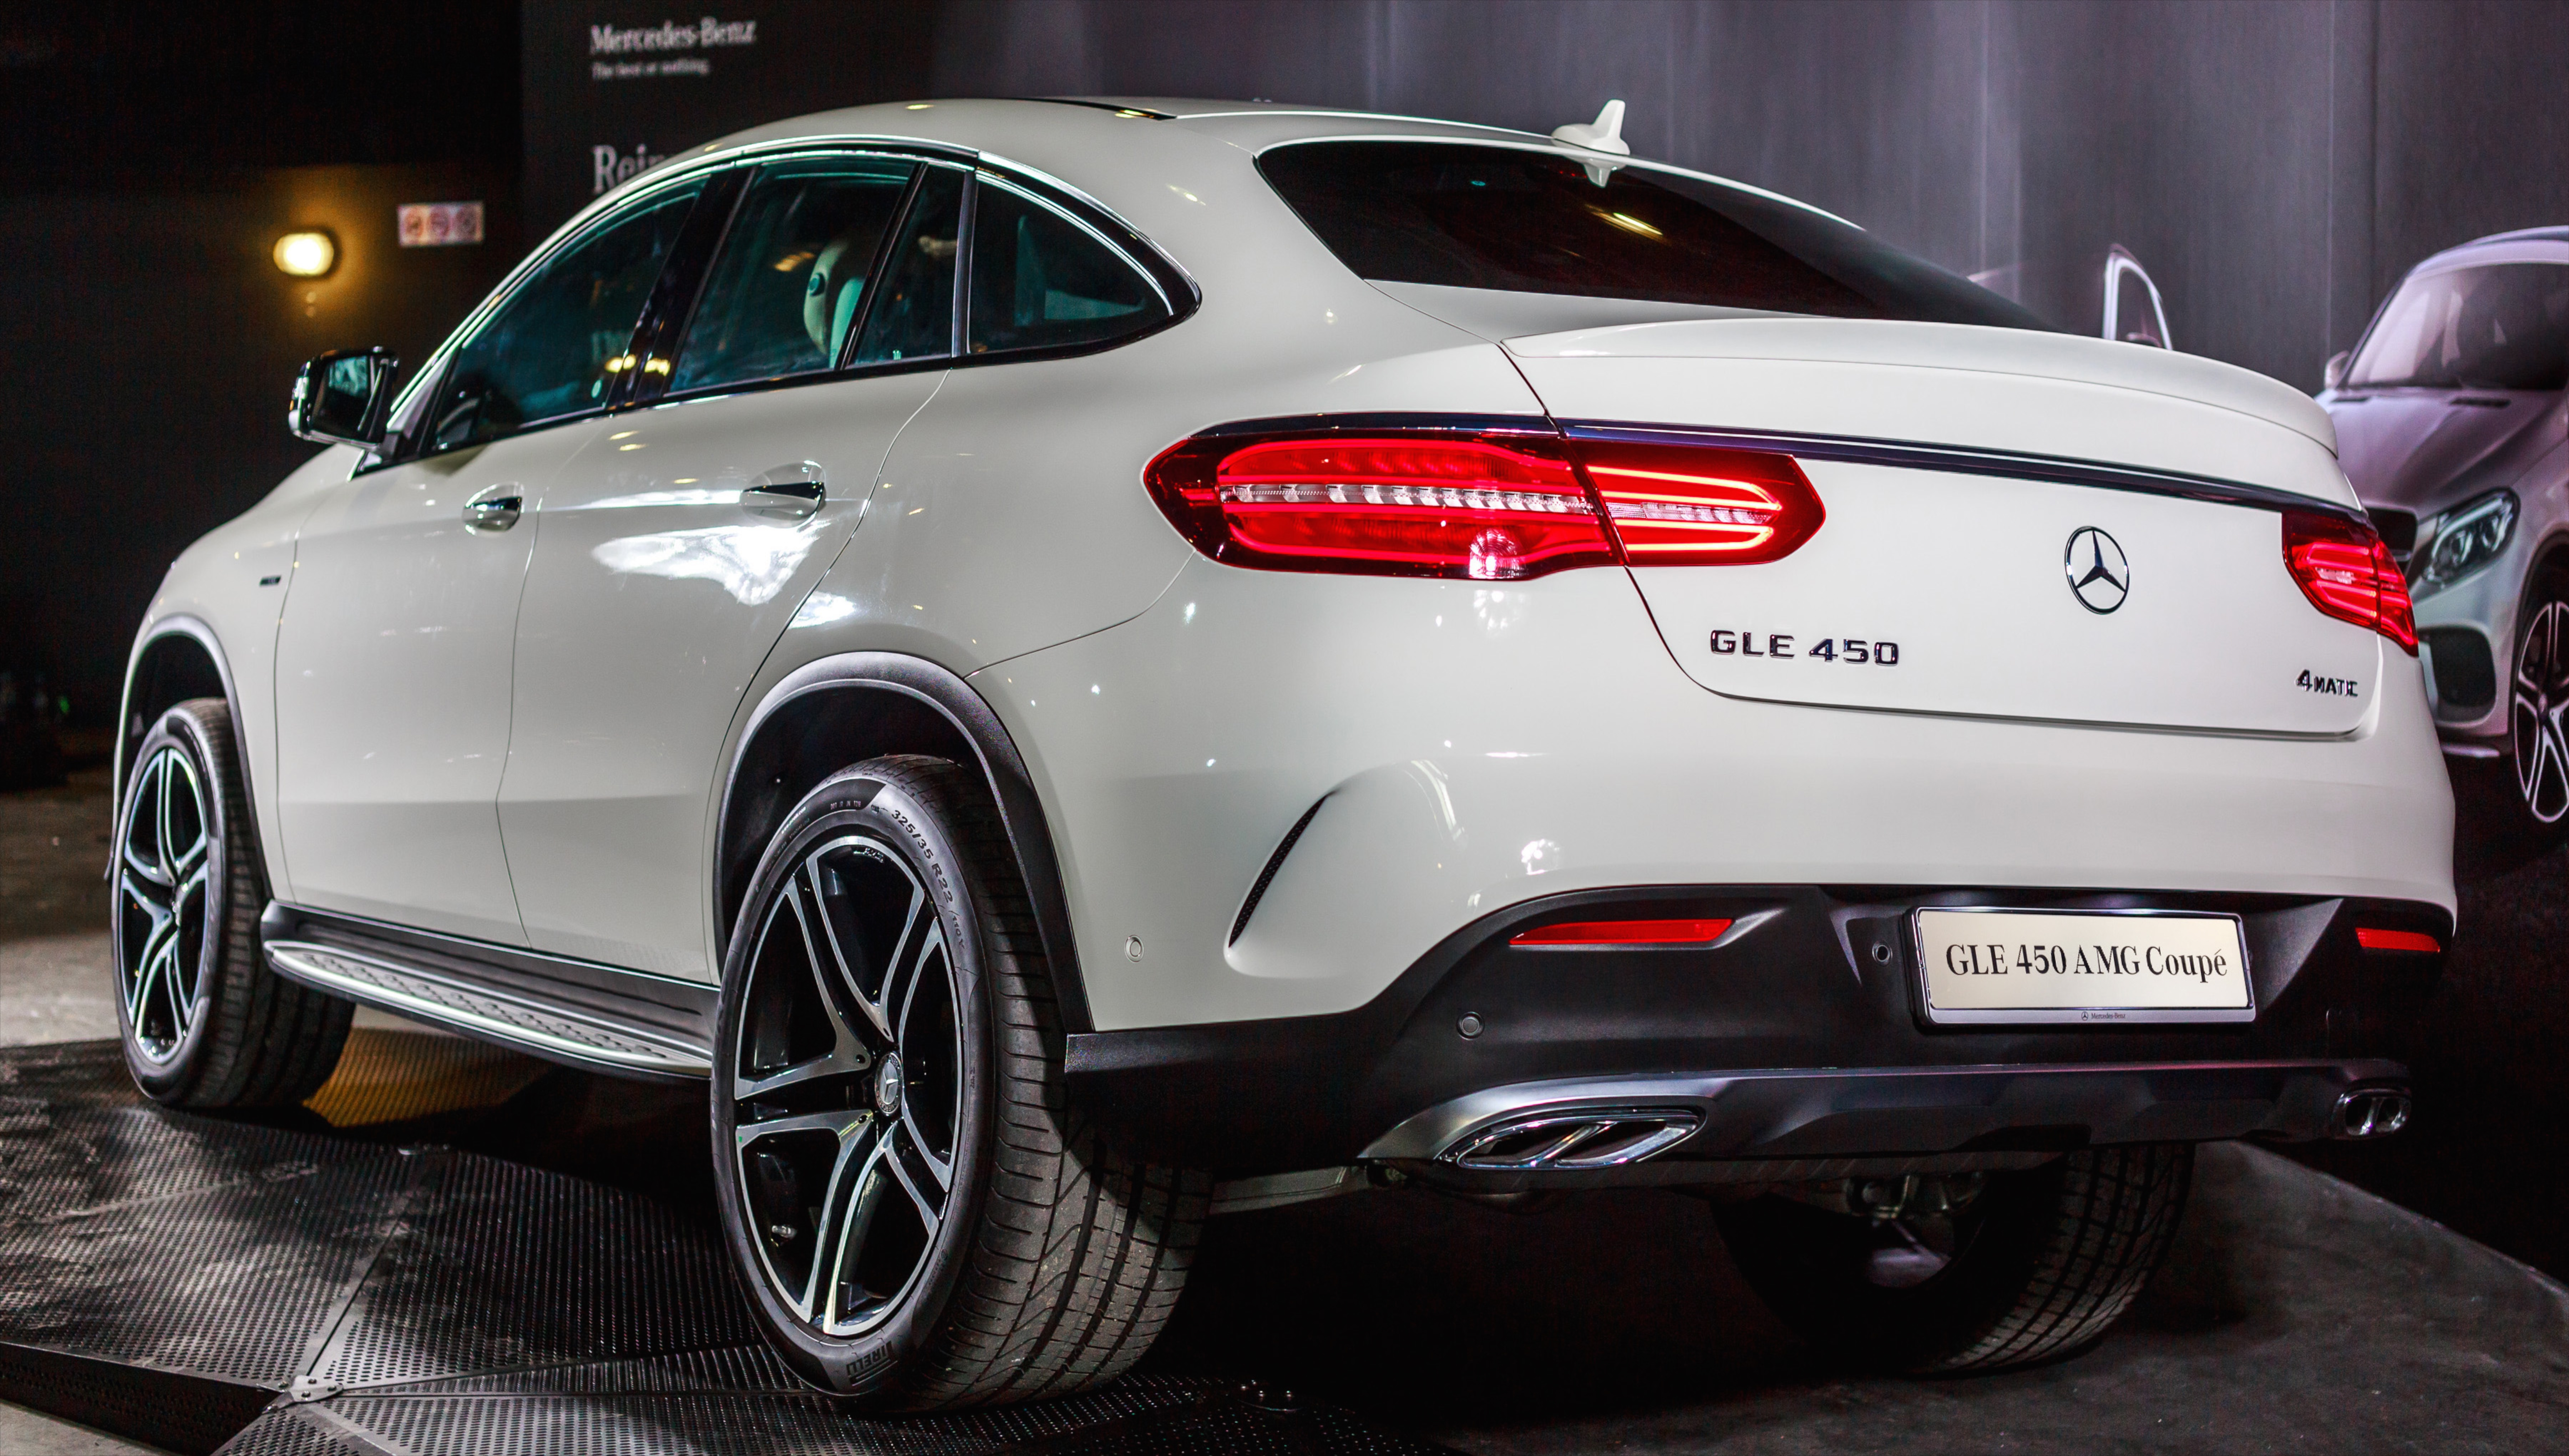 Images Of A Mercedes Benz GLE Coupe